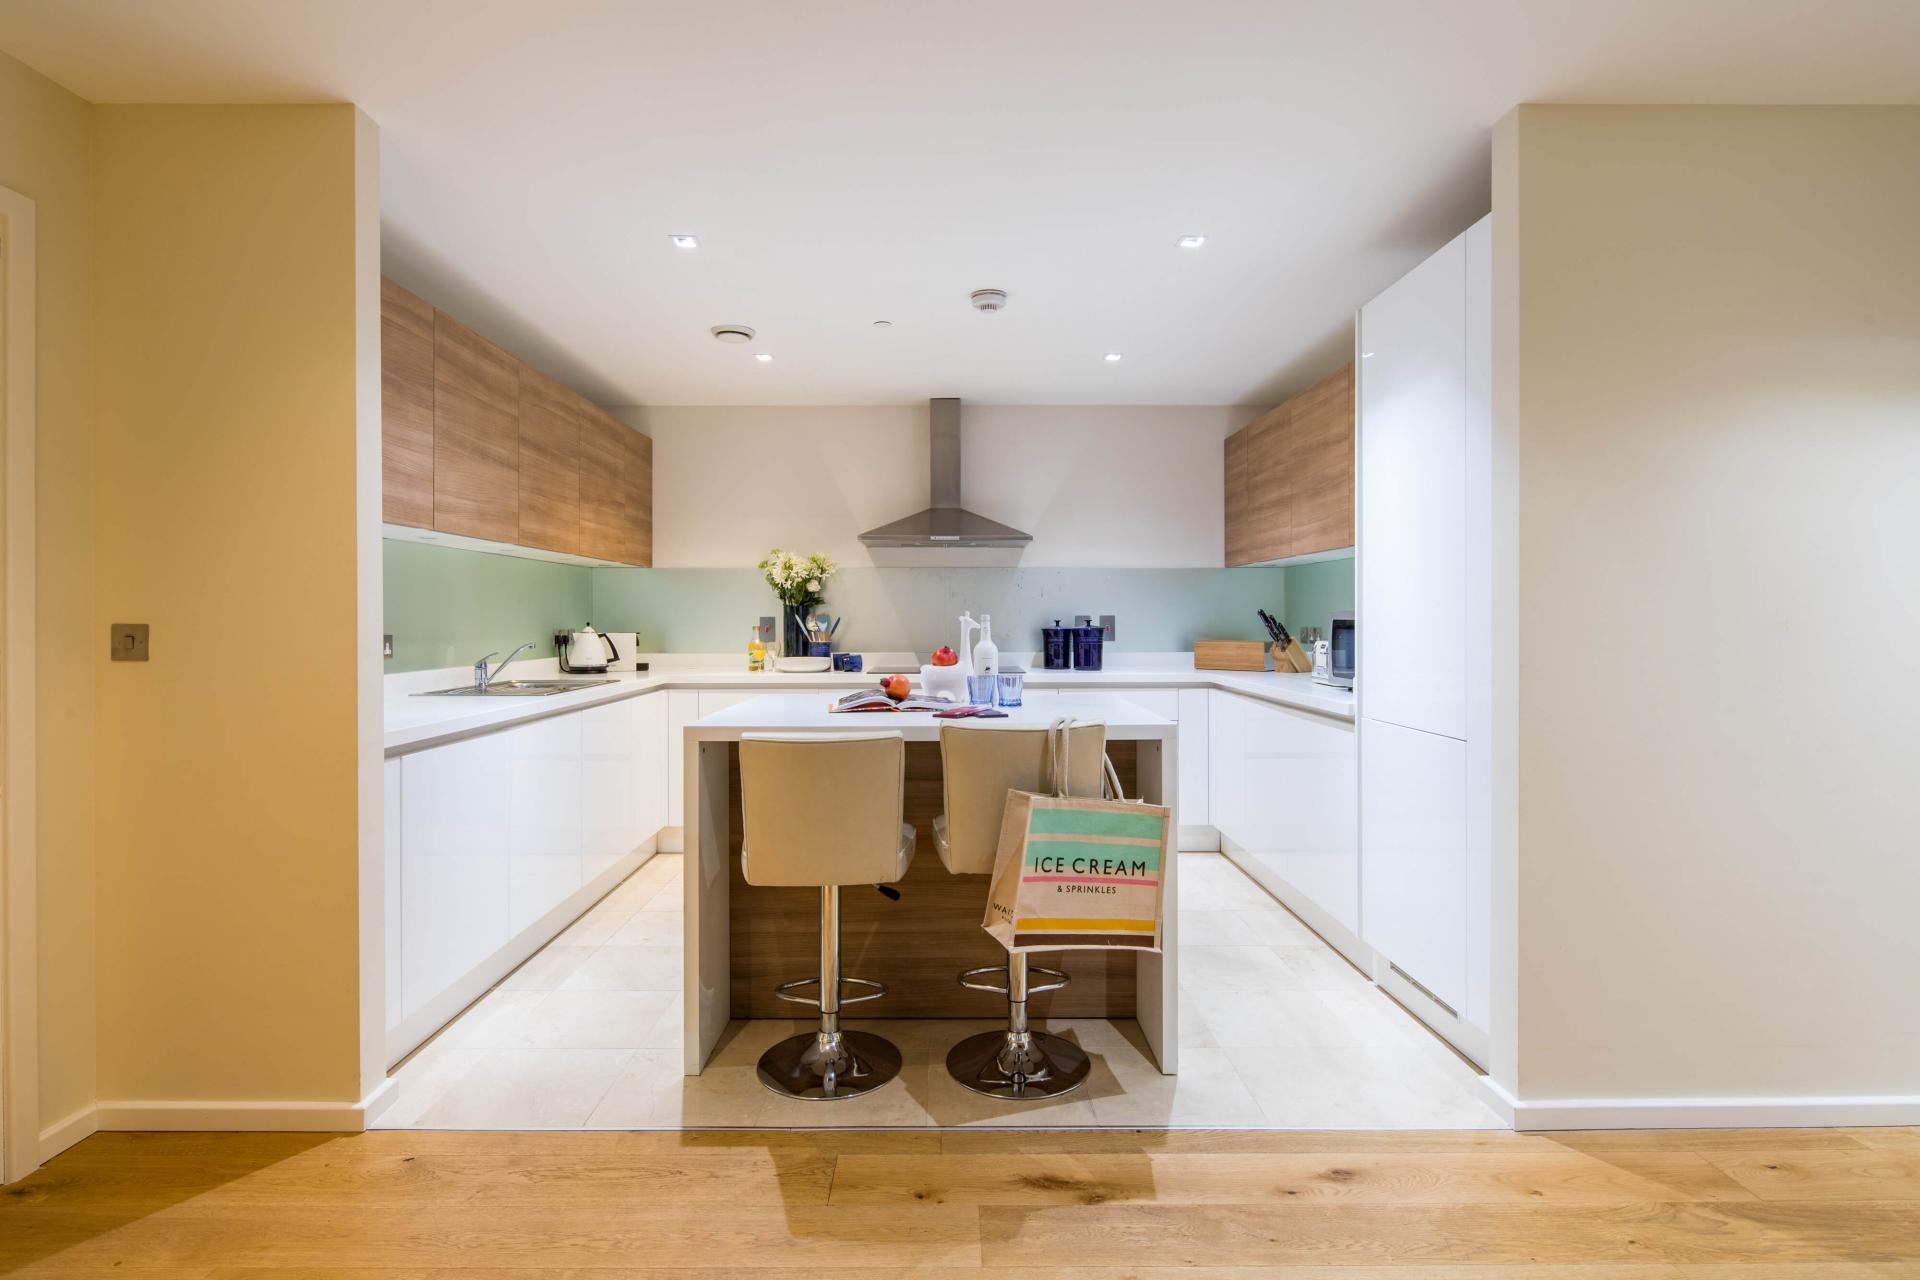 Kitchen at Meritas Court Apartments, Bayswater, London